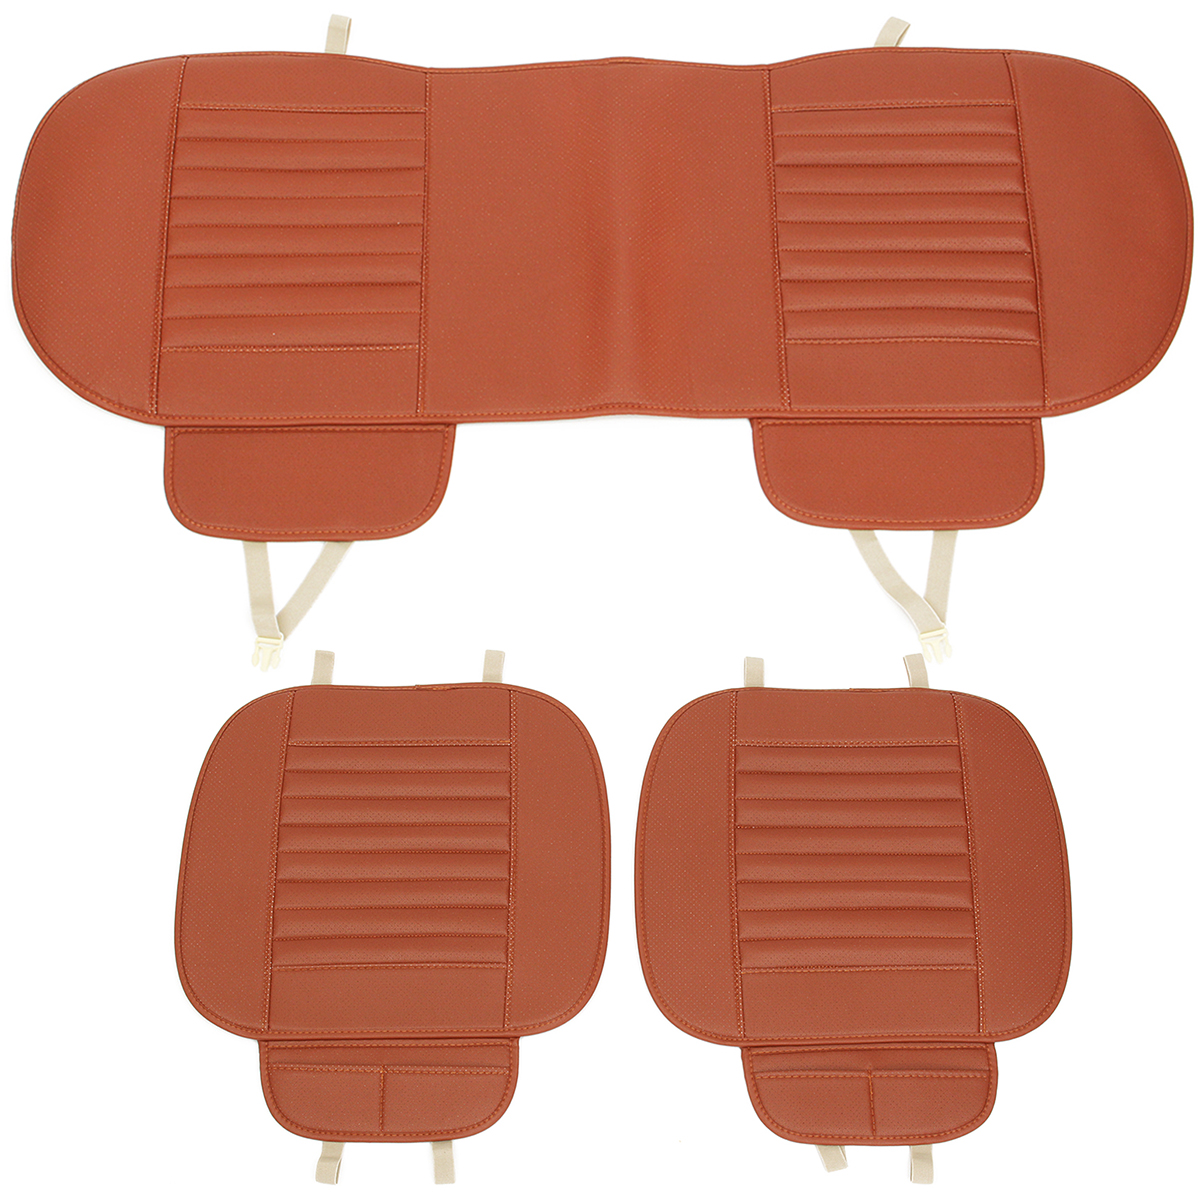 3Pcs Car Universal Seat Cover Pad Chair Cushion Bamboo Breathable PU Leather US